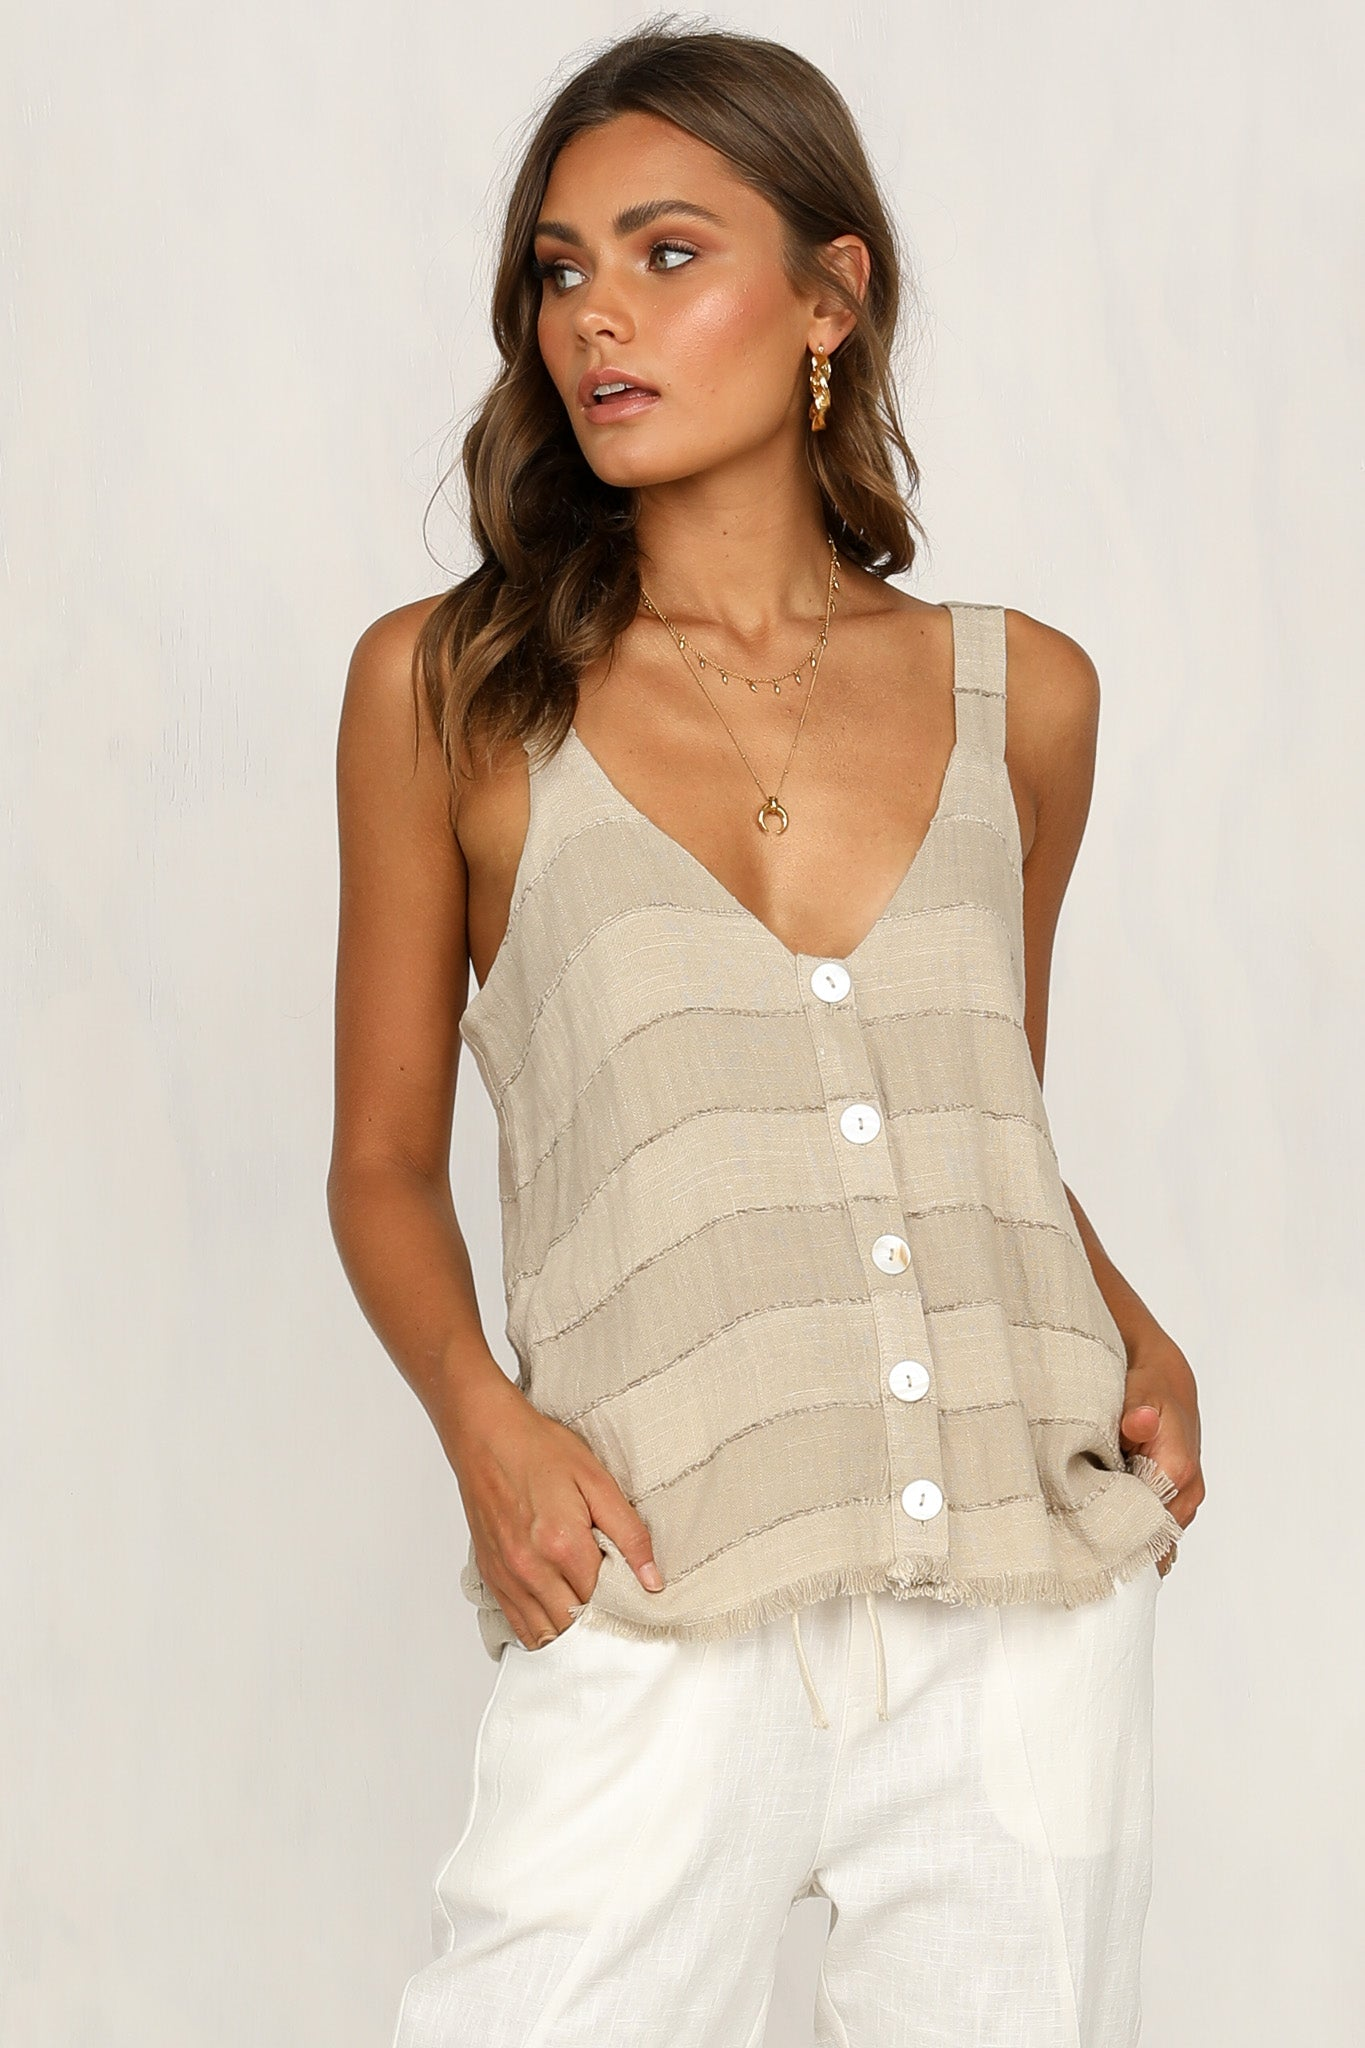 This Bliss Top